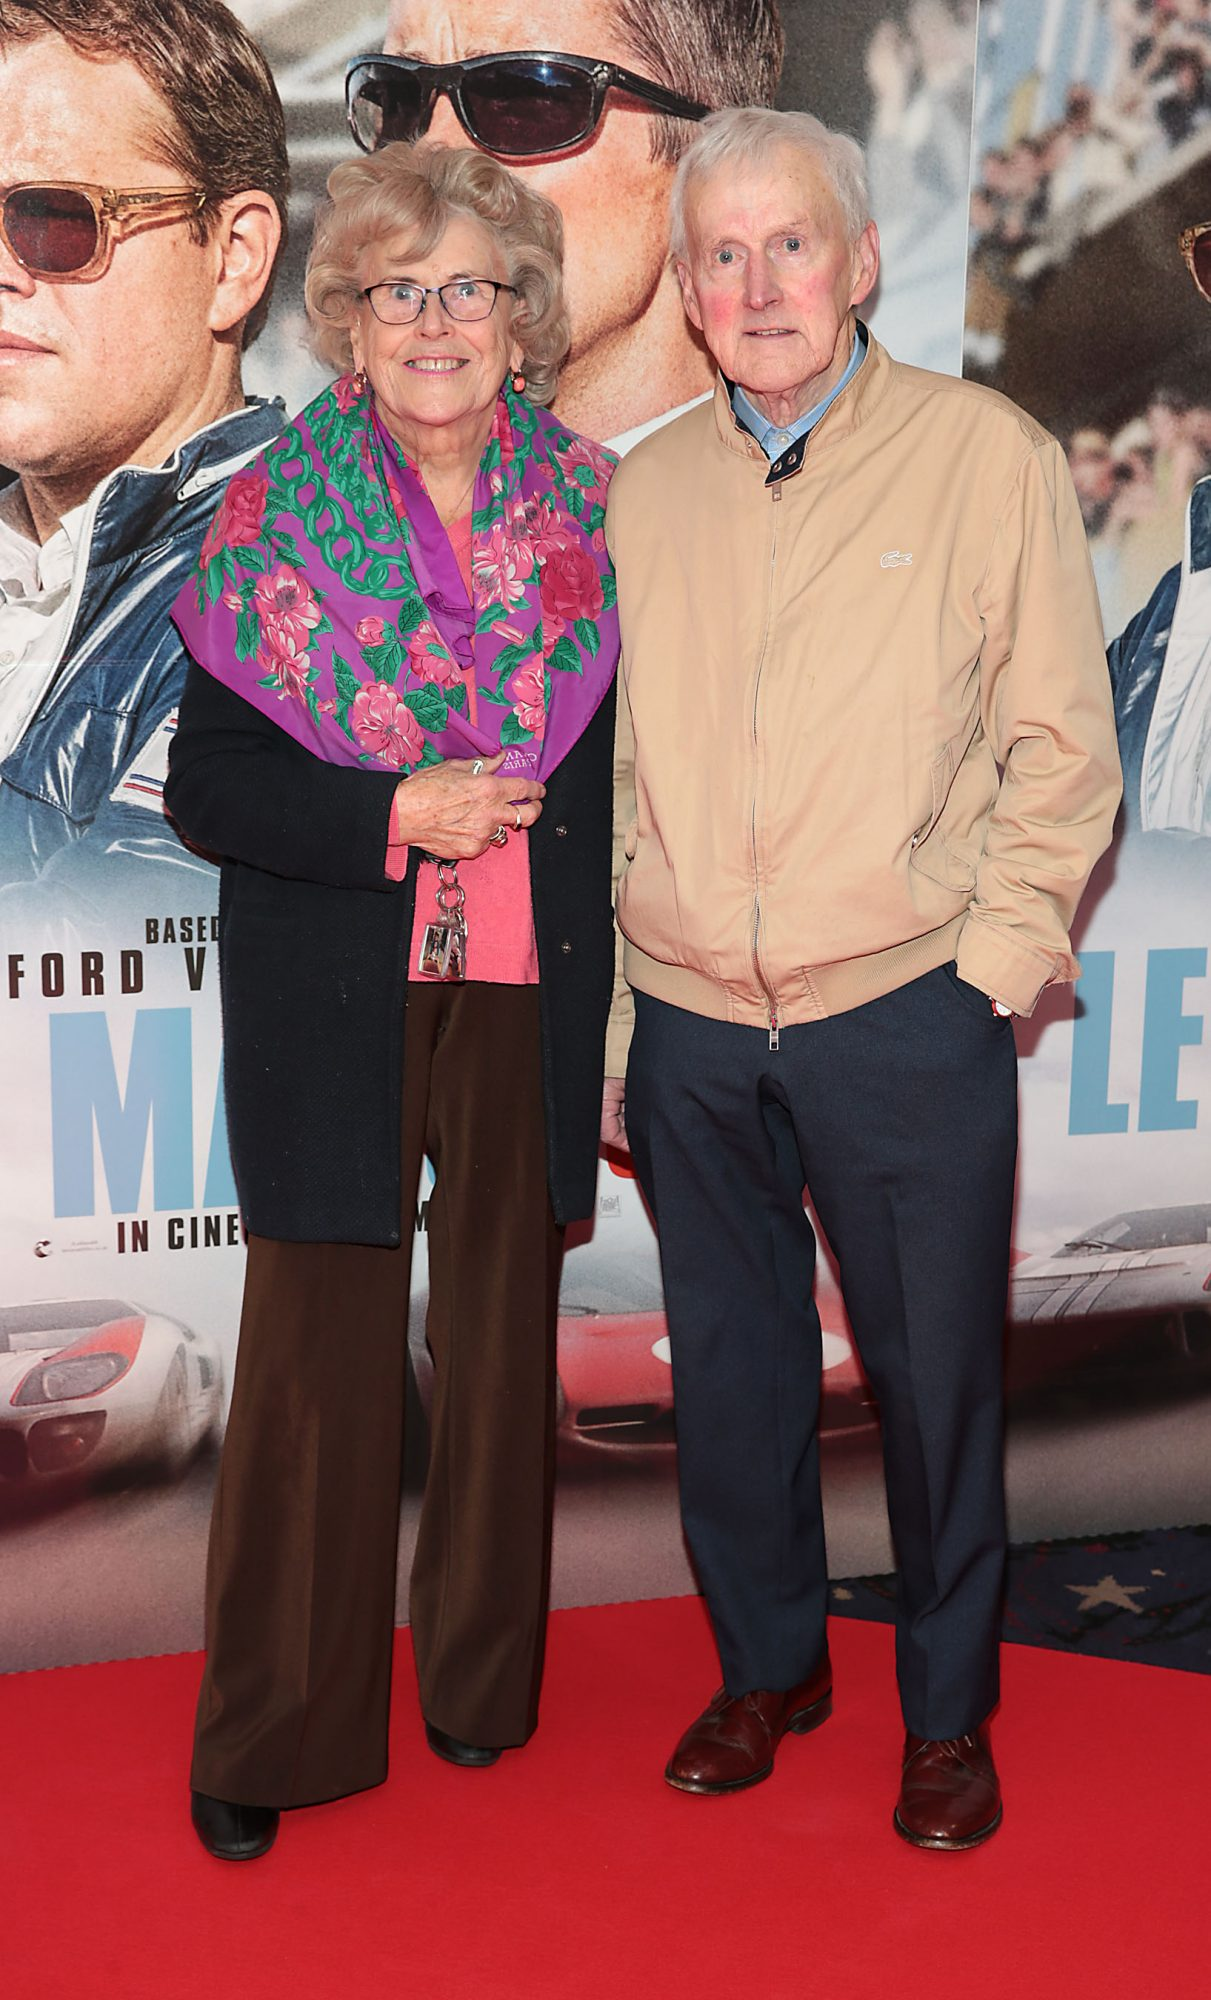 Pat Kearns and Jim Dunne pictured at the special preview screening of Le Mans '66 at Cineworld, Dublin. Photo: Brian McEvoy.